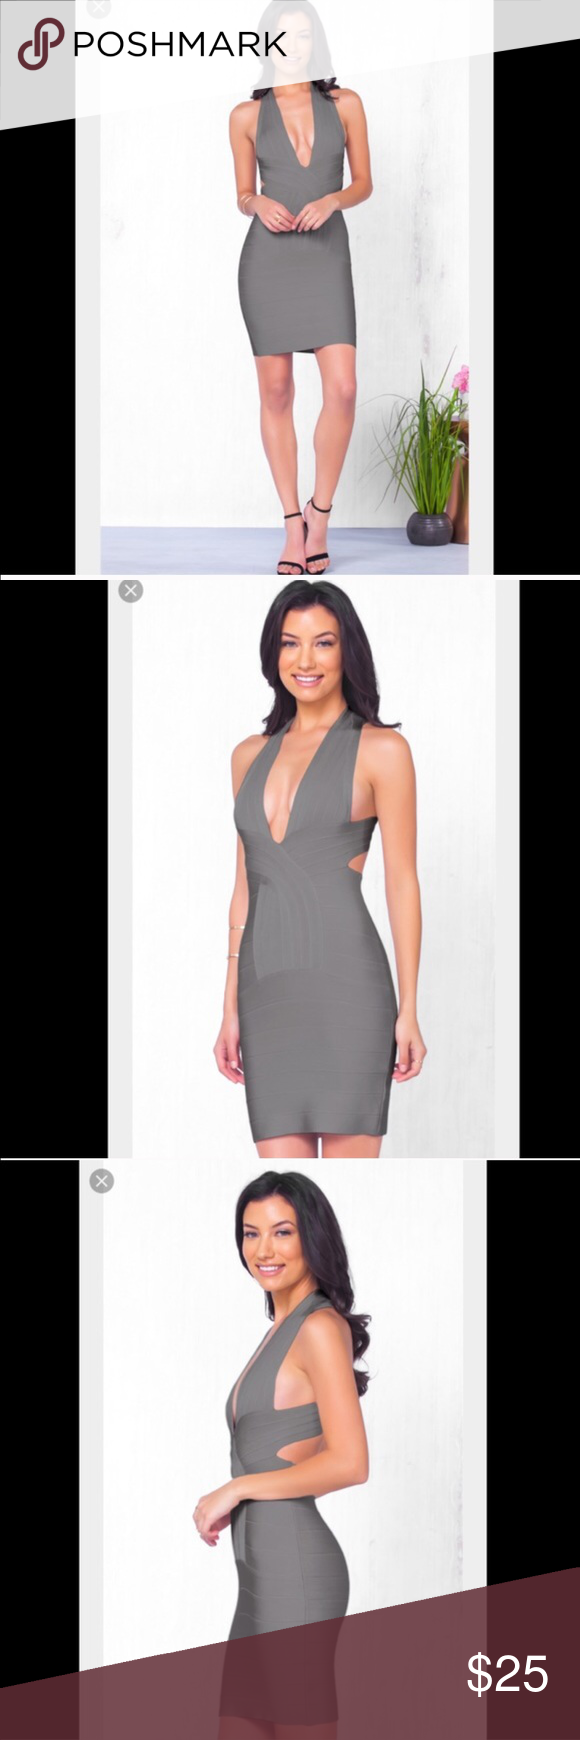 Sexy grey bandage dress gray customer support and delivery